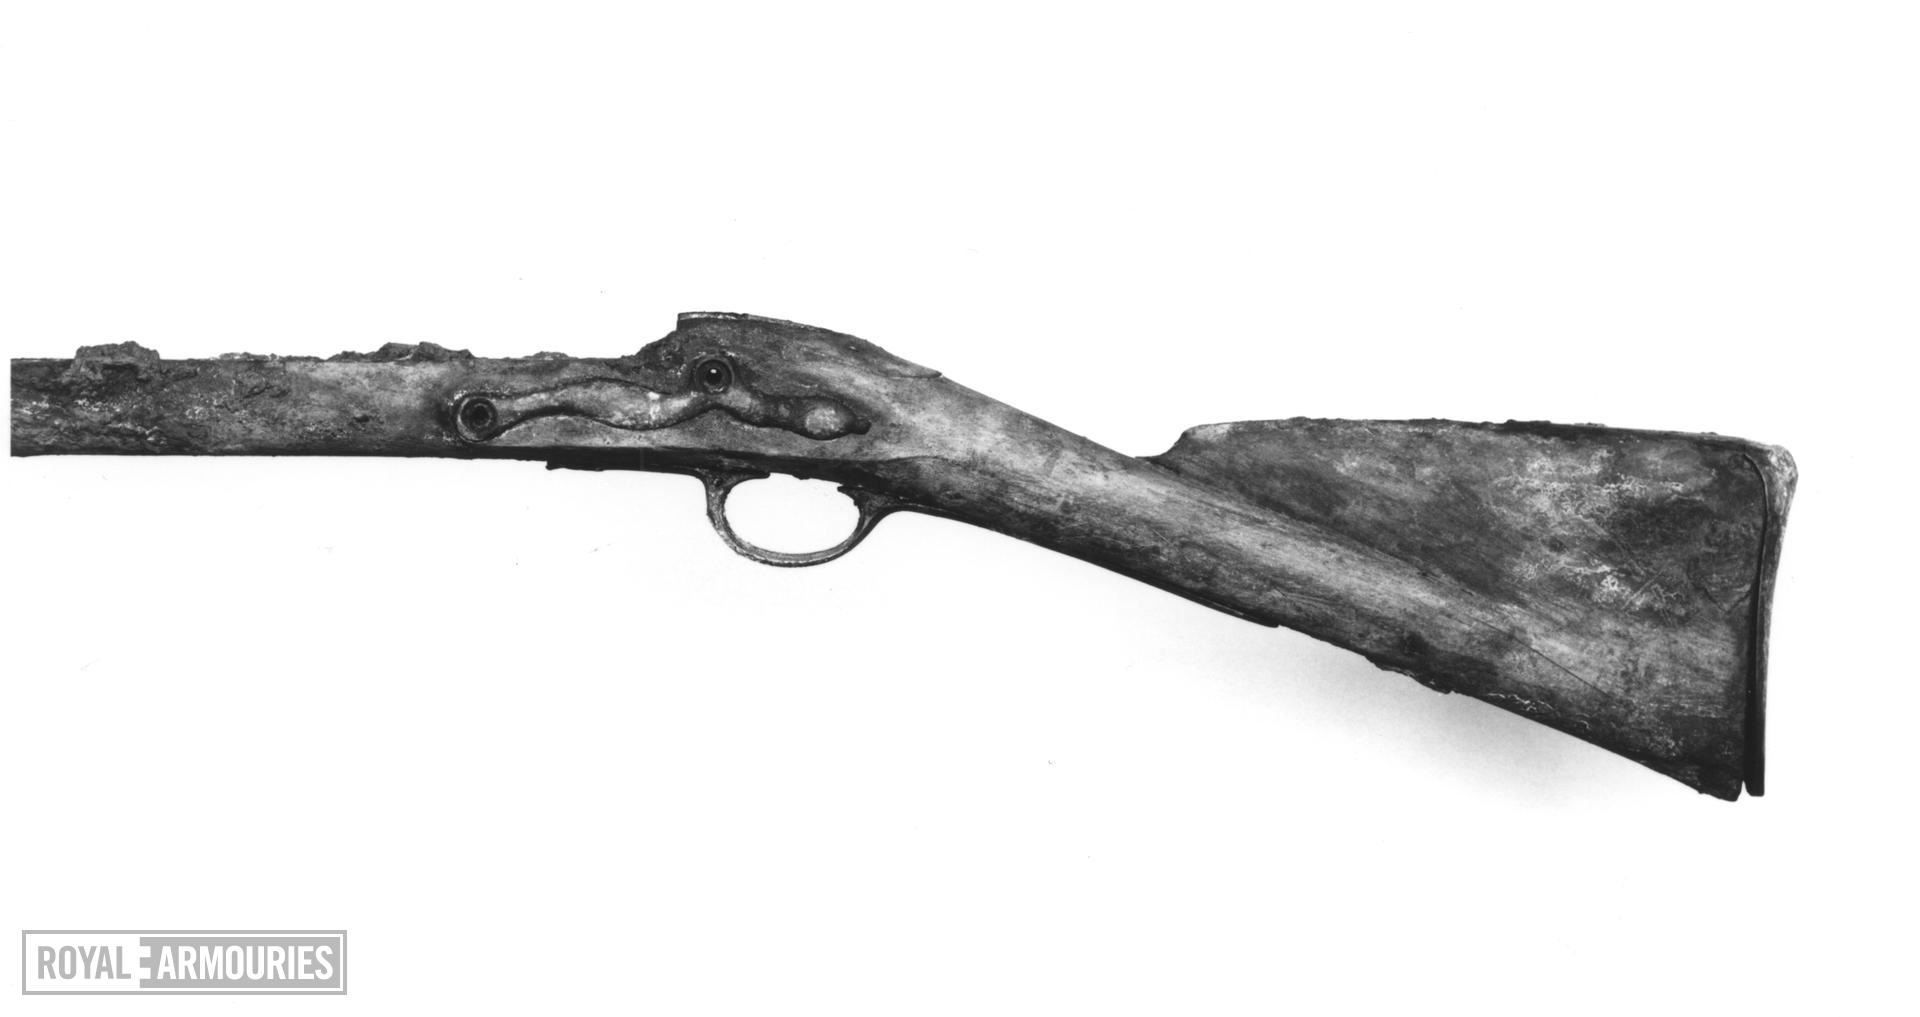 Flintlock muzzle-loading military musket - Lawrence Pattern Of East India Company Stock only